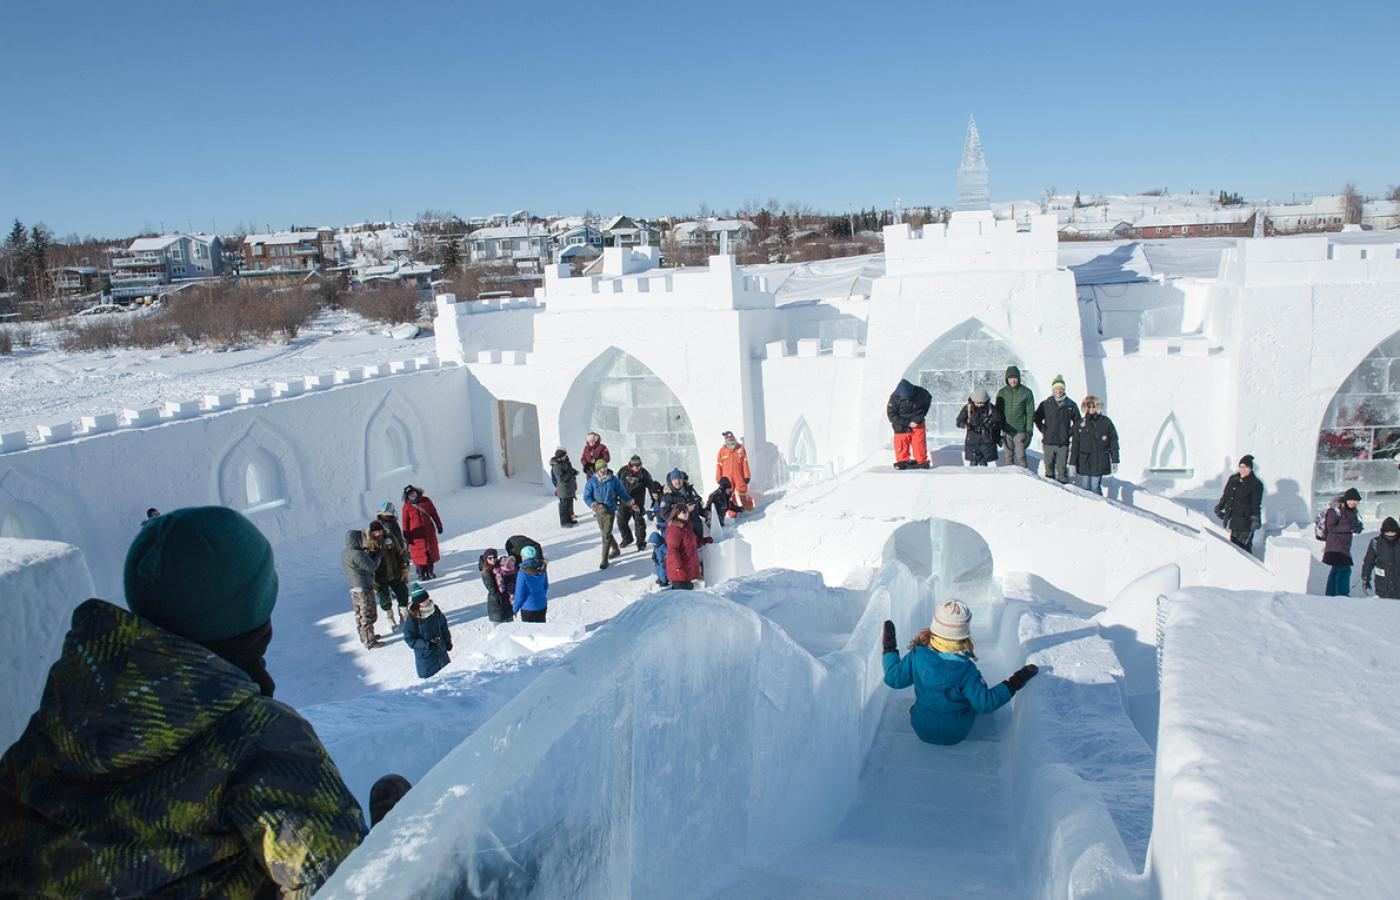 The Snowking Castle in Yellowknife